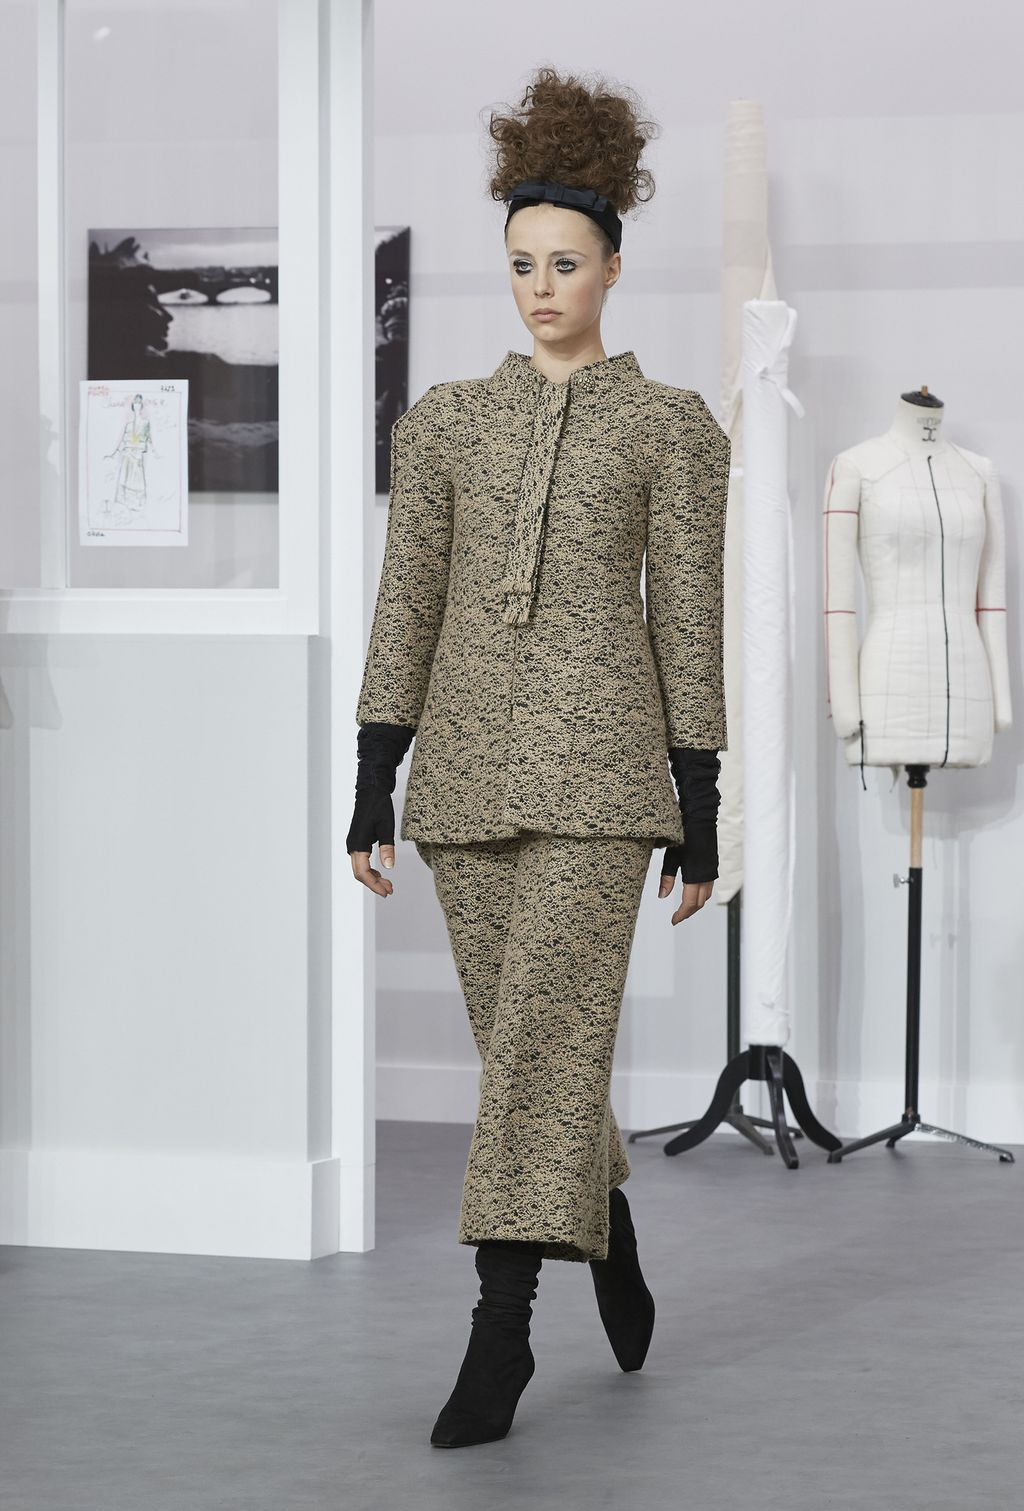 <p>For his Winter 2016 couture show, Kaiser Karl invited guests to a makeshift behind-the-scenes Chanel atelier - painstakingly rebuilt in the Grand Palaisdown to the pin - to honour the 200-strong haute couture team that tirelessly assembled the 70 intricate looks presented yesterday in Paris.</p> <p><br> Referred to as'les petites mains'- or 'the little hands' - the seamstresses and technicians continued working in their 'studio' as models including Australian Catherine McNeil swanned through in fresh takes on house classics: boxy, prismic tweed suiting, careful embroidery, precious stone embellishment and flocks of feathers among multitudes of hand techniques too beautiful for words.</p> <p><br> Click through to see the collection in full.<br> <br> </p>